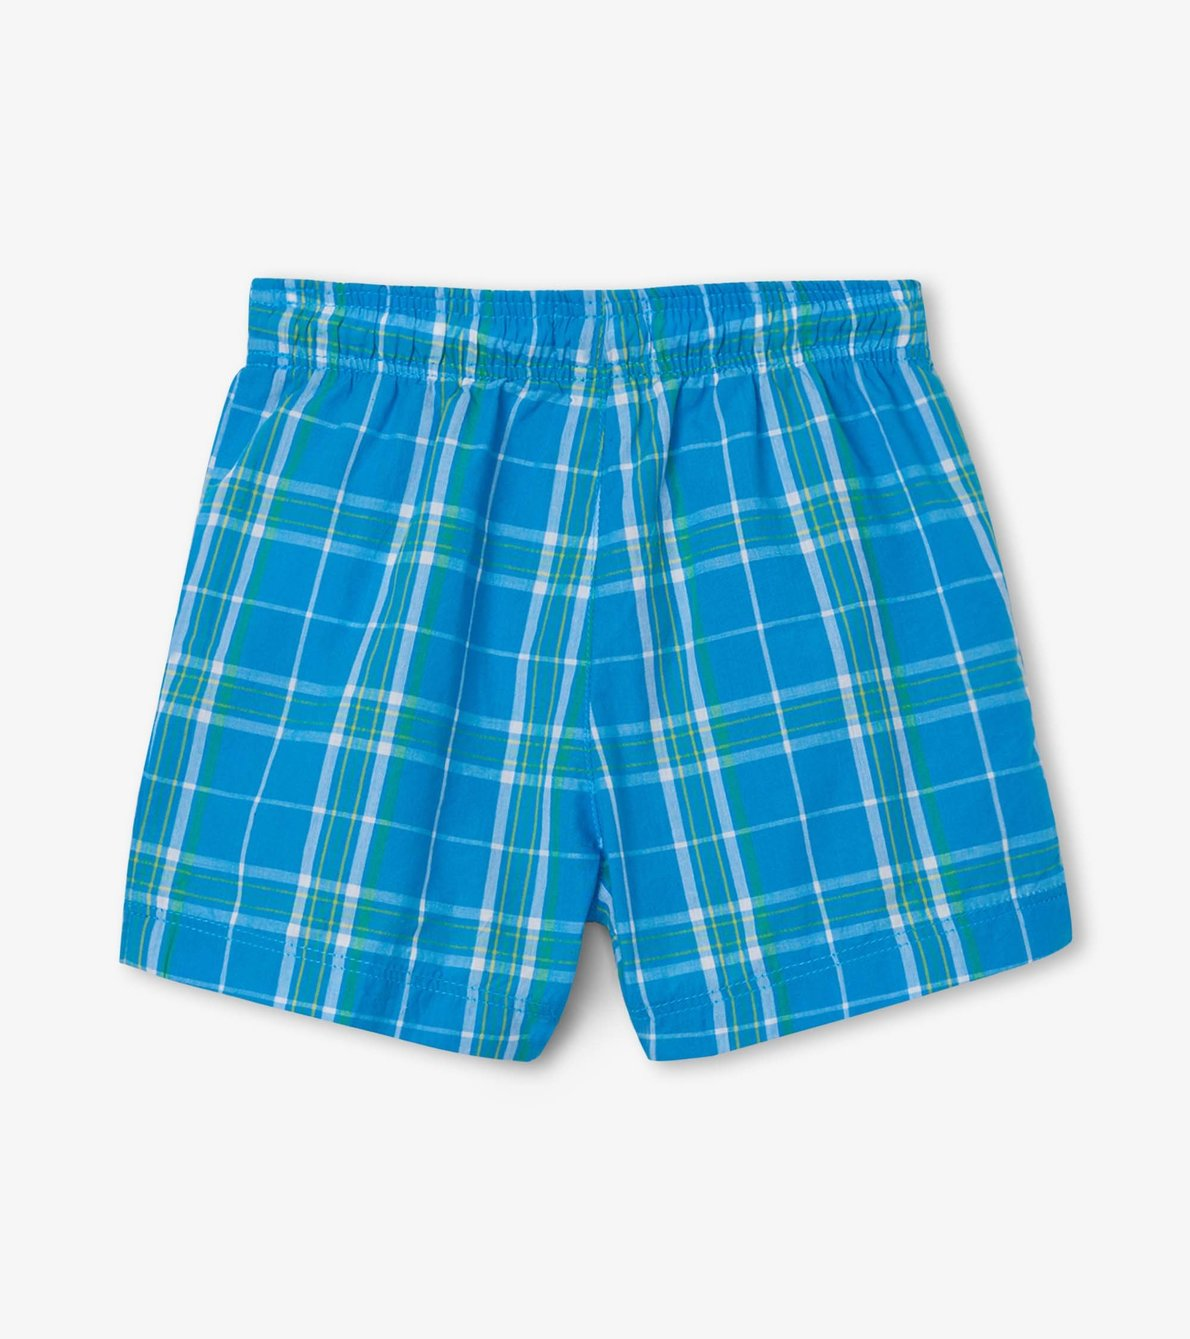 View larger image of Summer Plaid Baby Woven Shorts